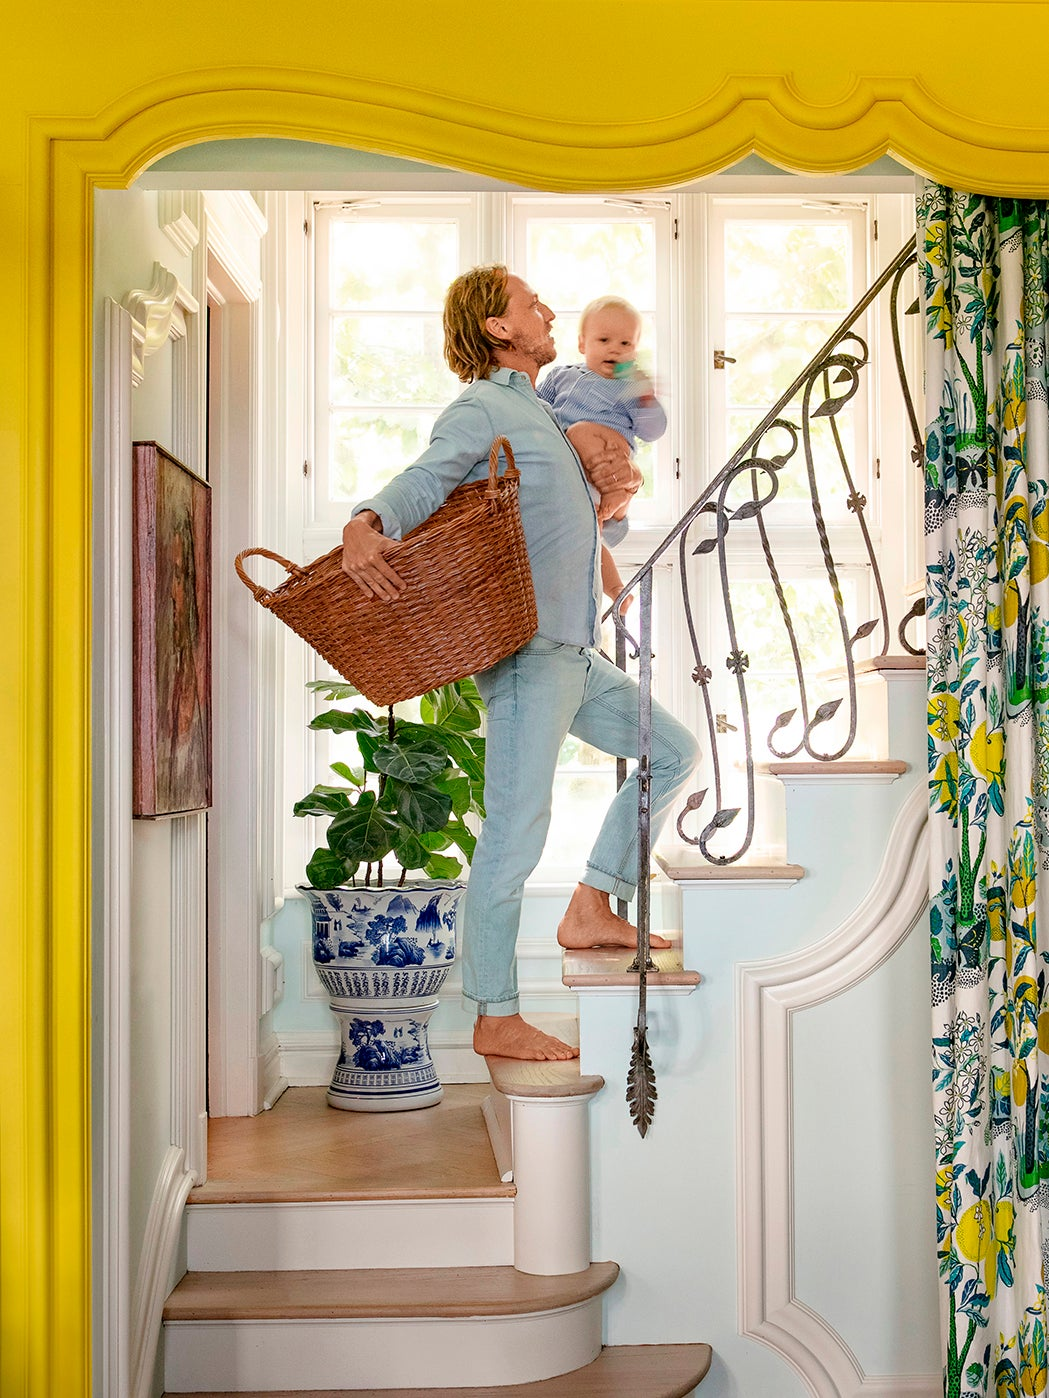 Man on stairs holding baby and laundry basket.